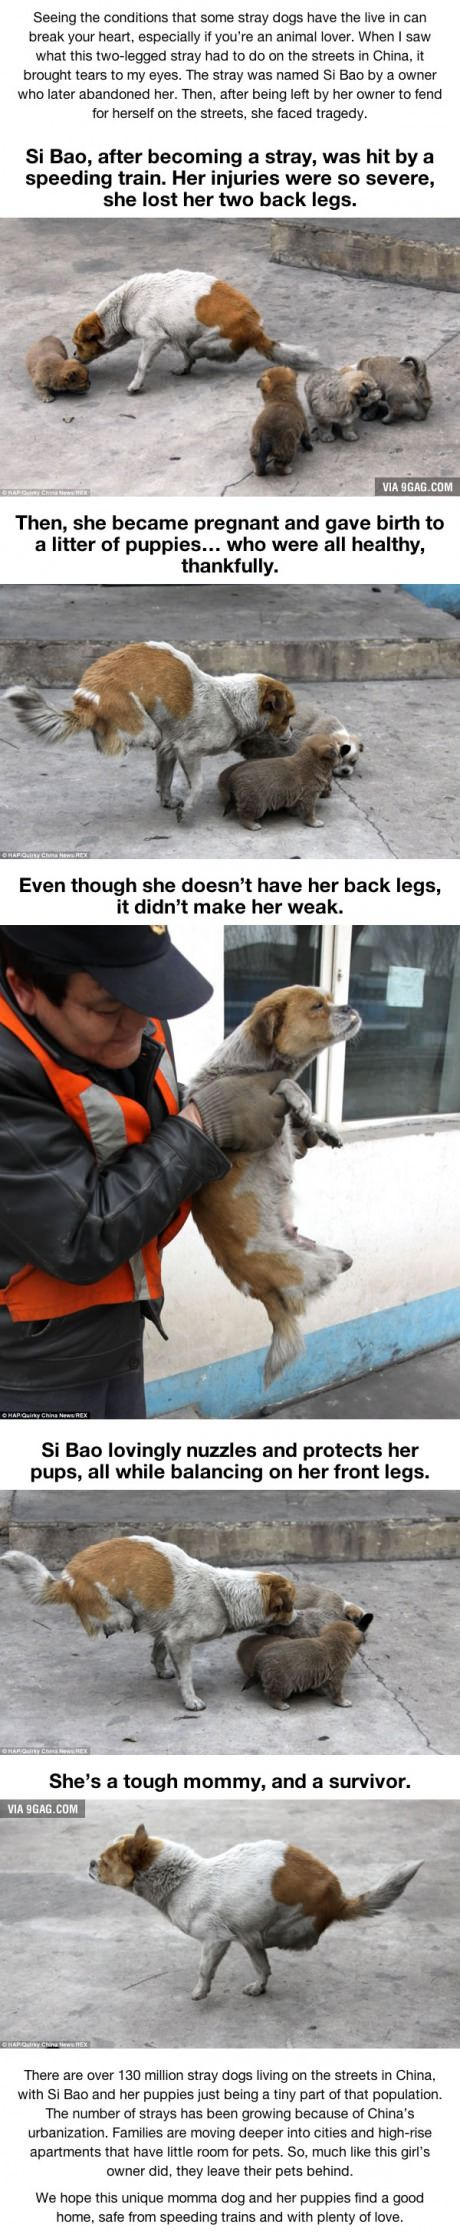 "Seeing What This Stray Dog Did Will Hit You Hard. ♦ℬїт¢â""Œαâ""""Ñ—¢Ñ—øυ﹩♦"